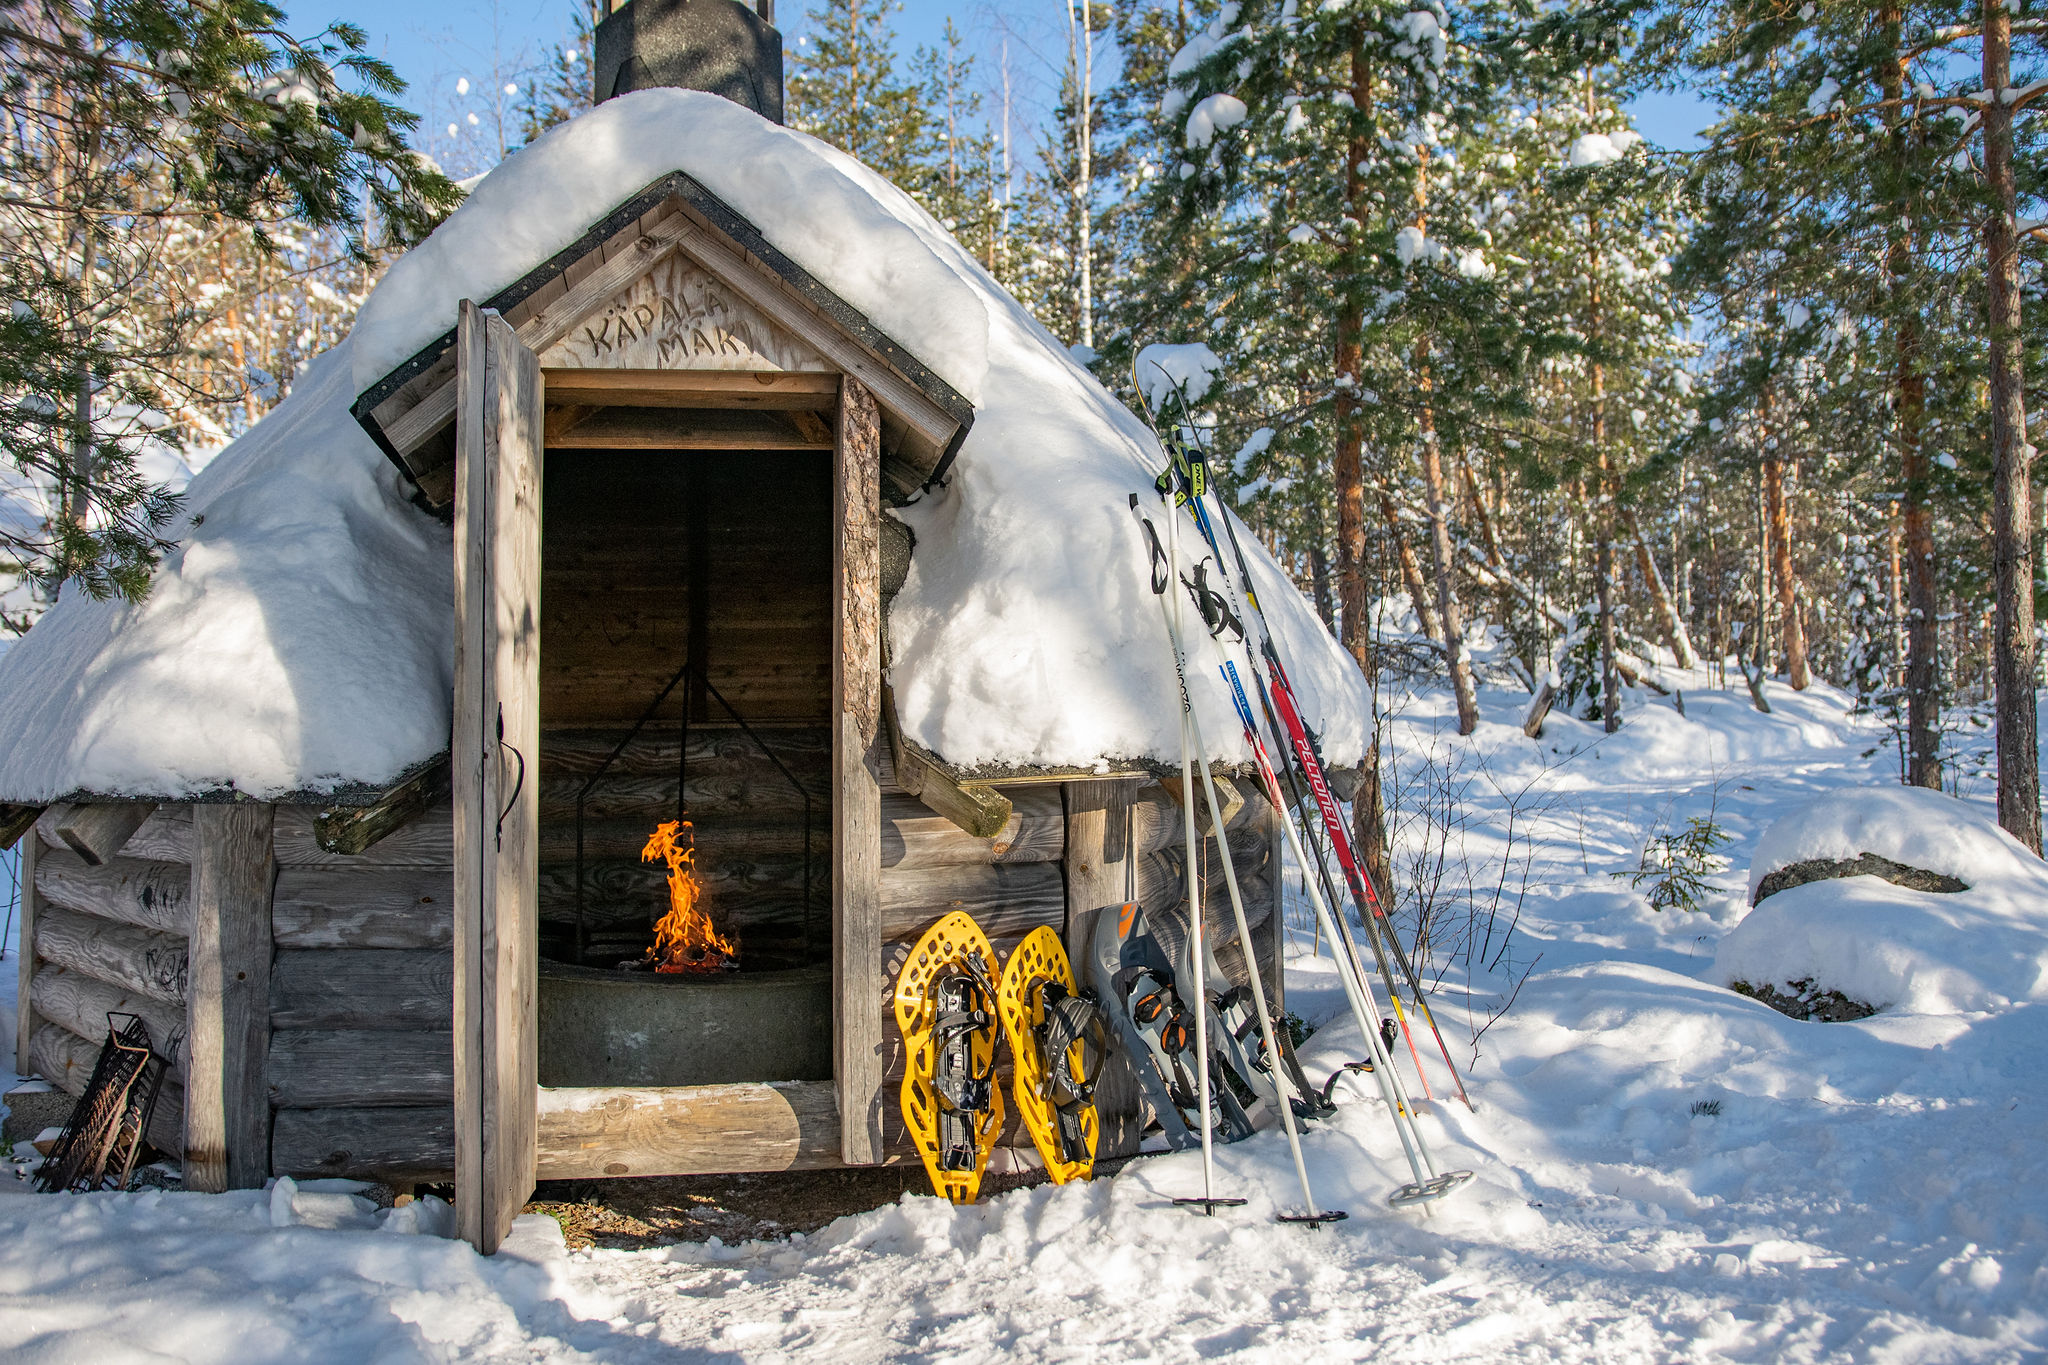 Winter campfire picnic over cross country skiing and snowshoeing